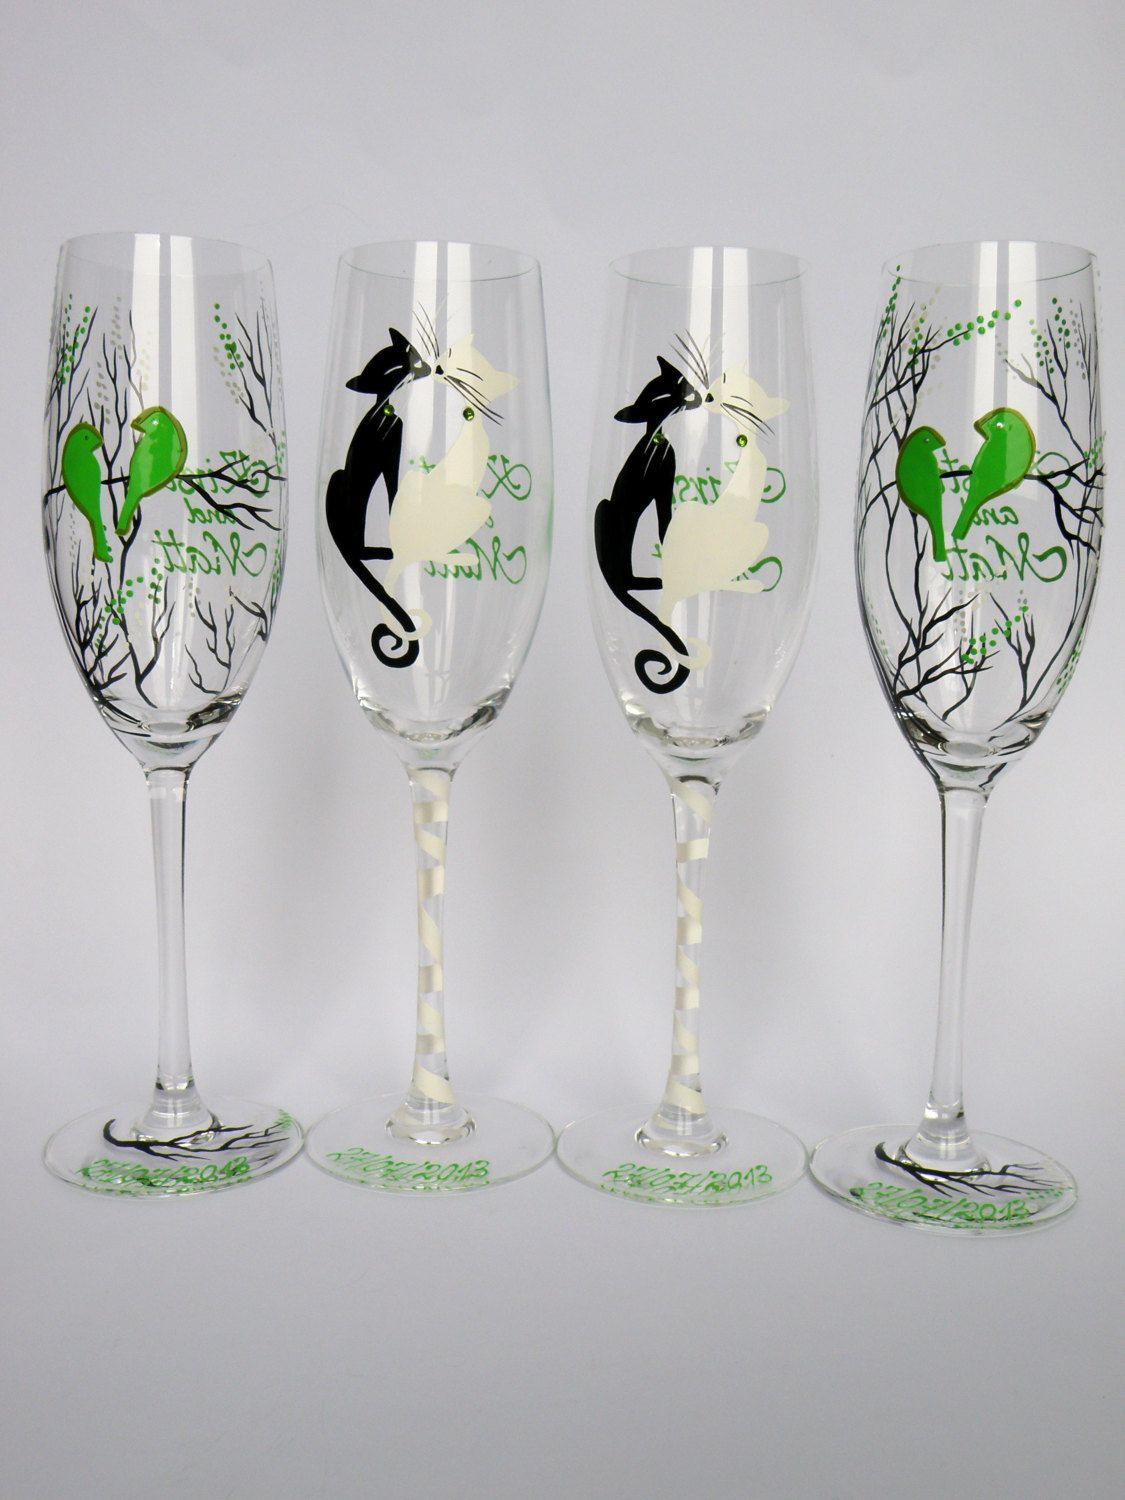 Hand painted Wedding Toasting Flutes Set of 4 Personalized Champagne glasses Black trees and Lime green birds, Black & White cats. $92.00, via Etsy.